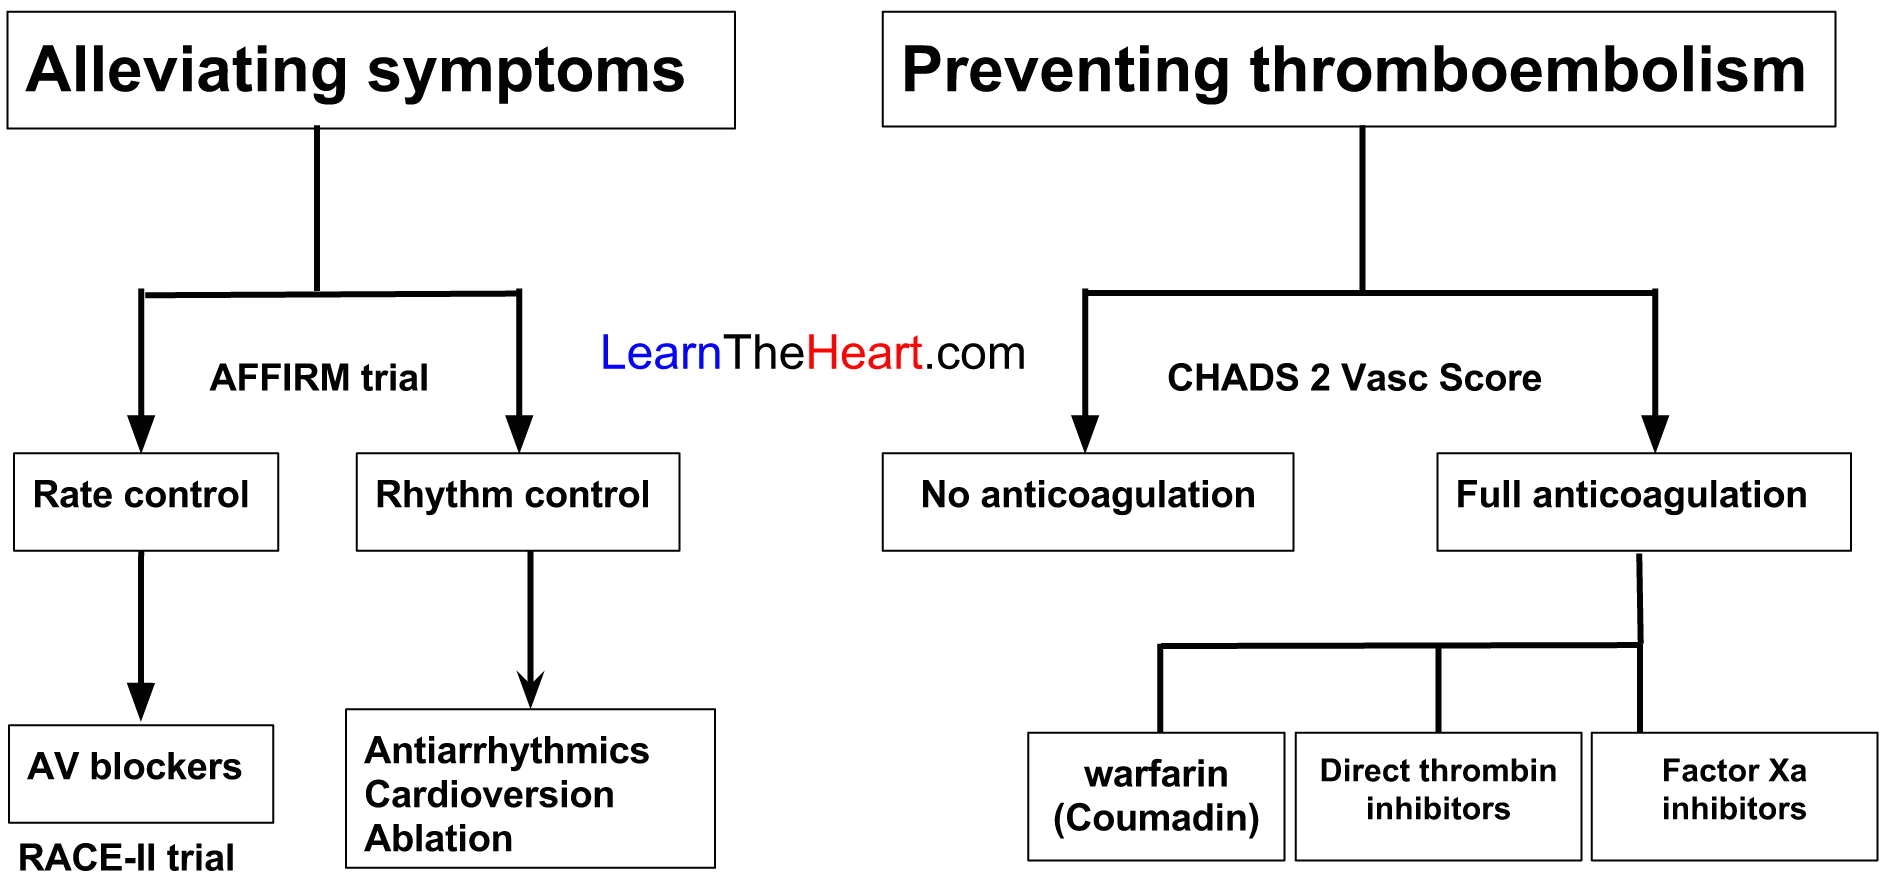 Atrial flutter: causes, diagnosis, treatment 94